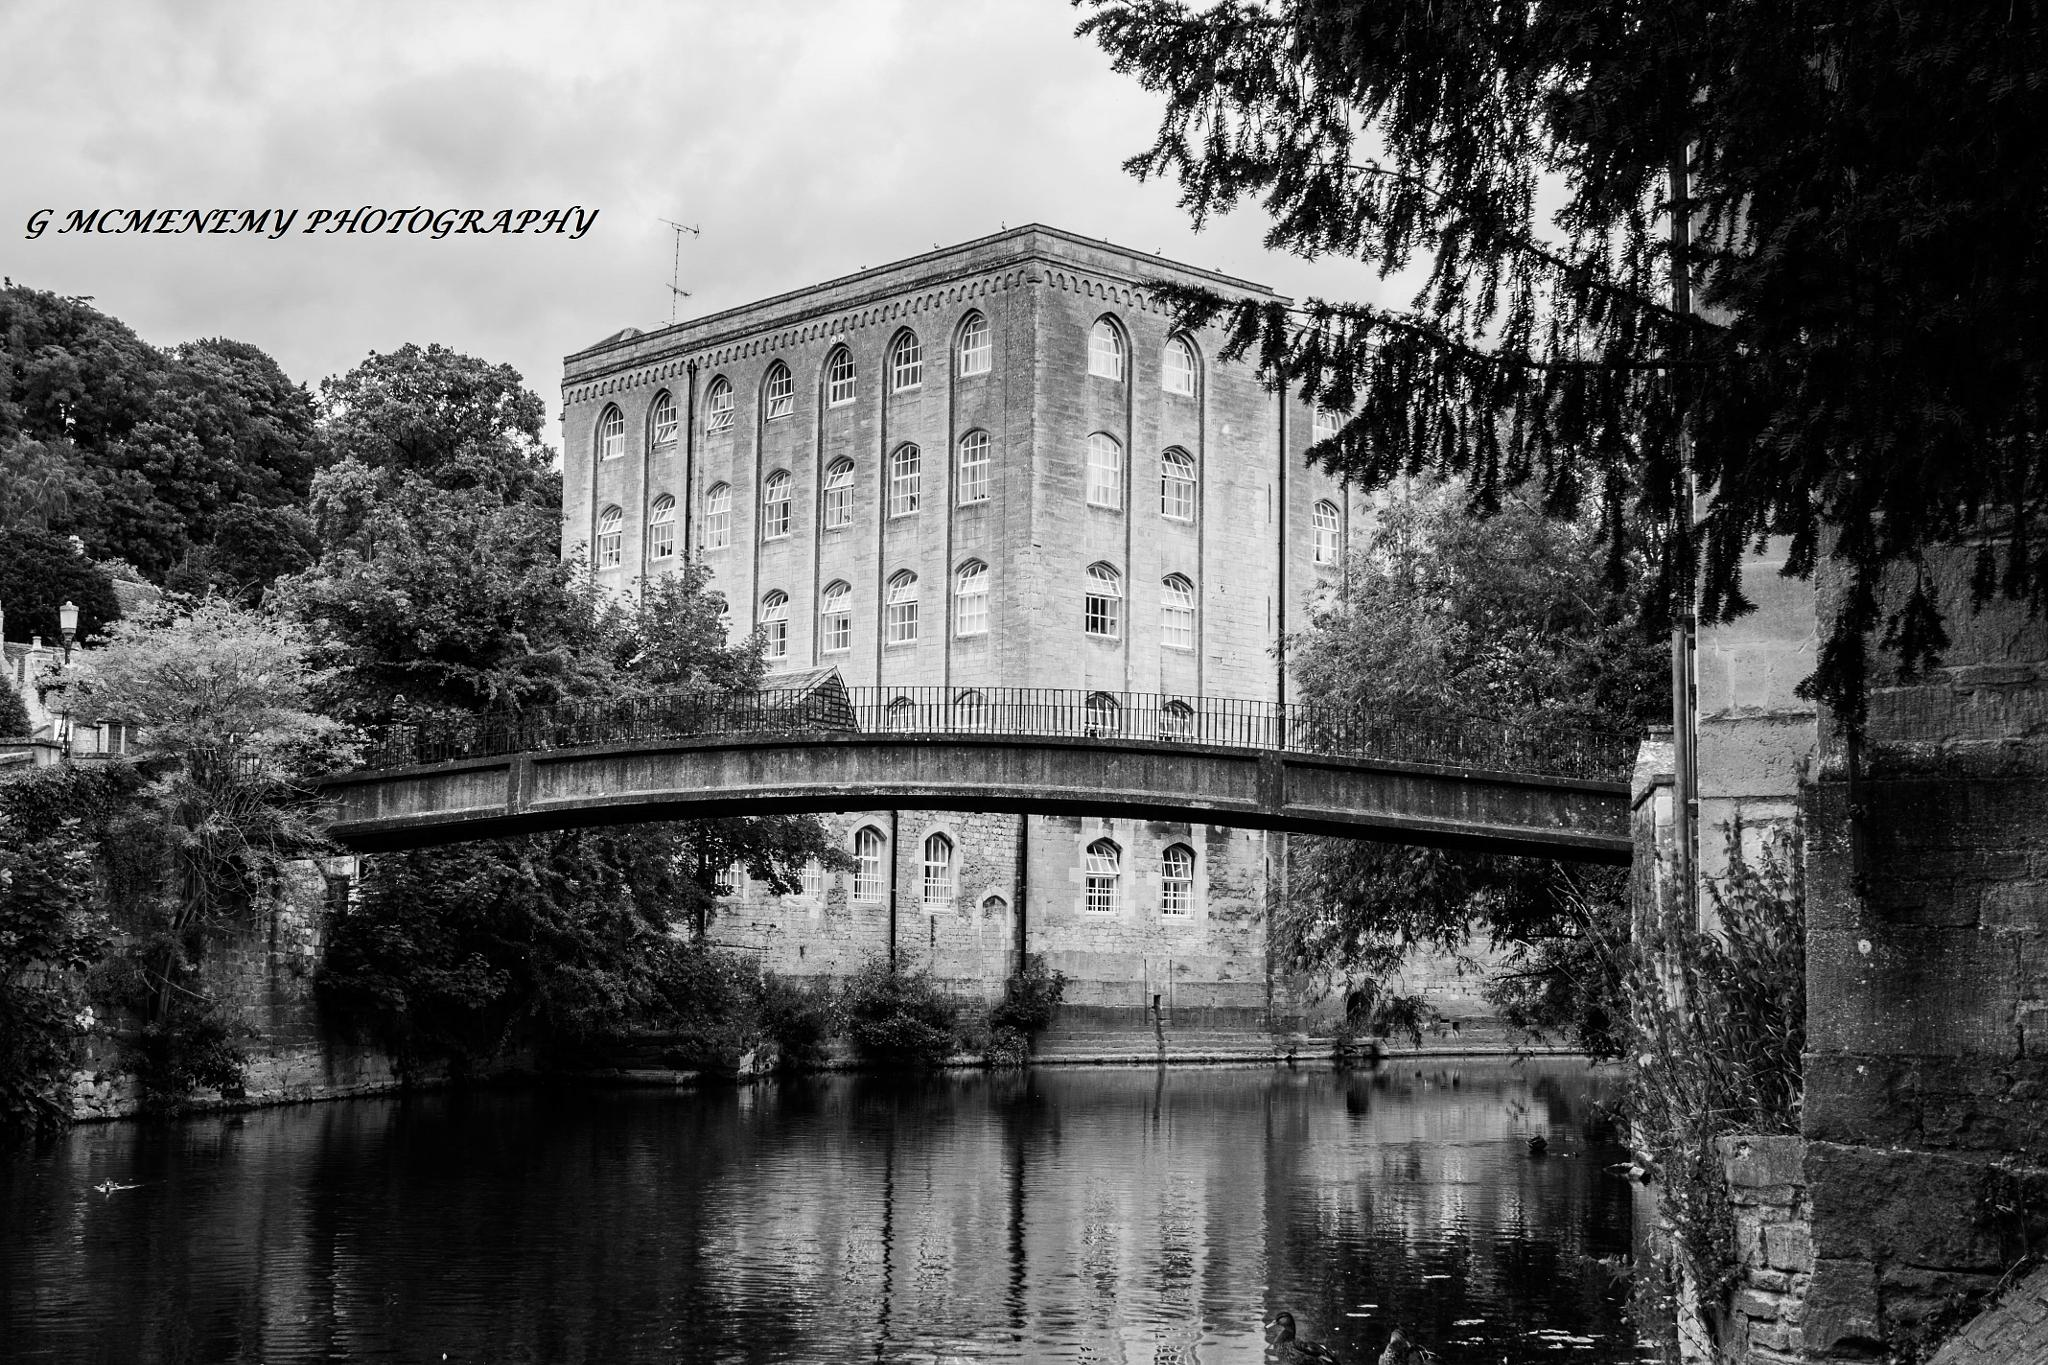 The Old Mill & McKeever Bridge by george.mcmenemy.7